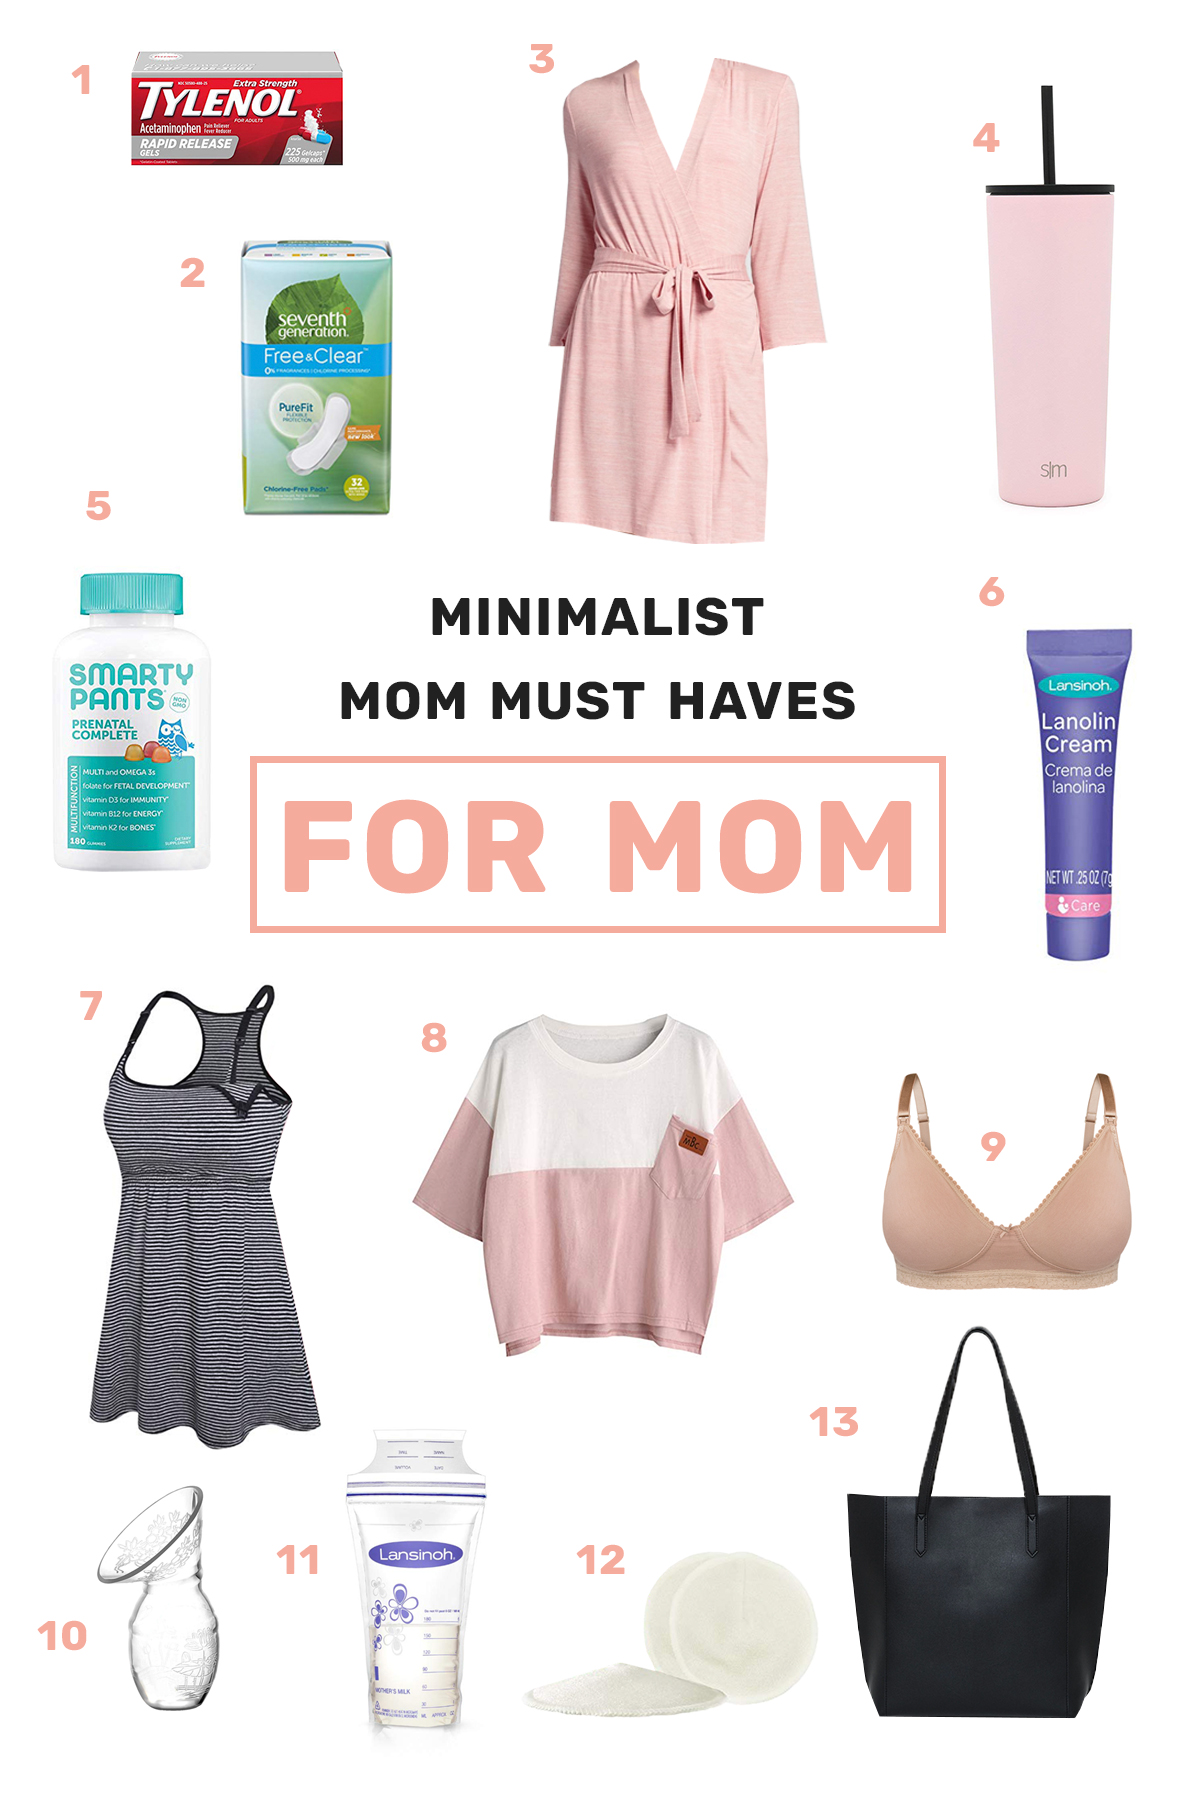 minimalist_mom_must_haves_mom.jpg